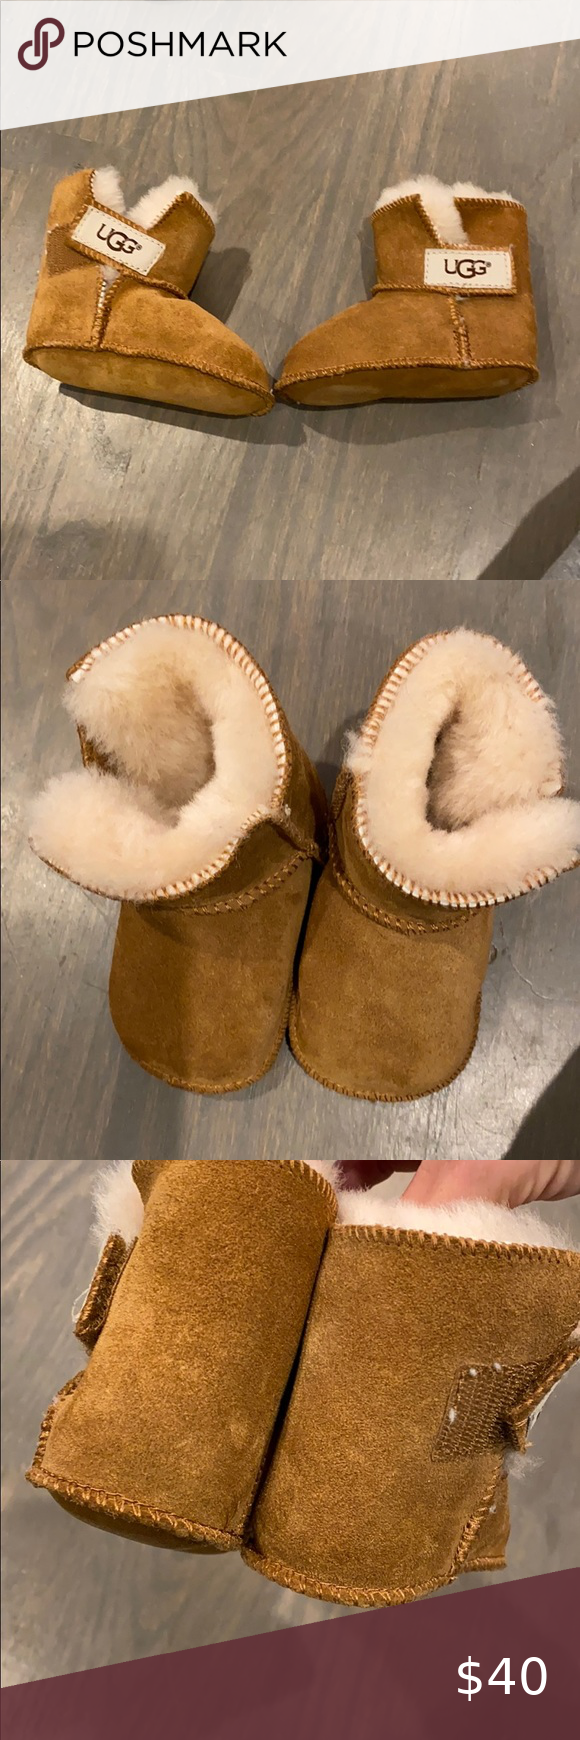 8e43e6deca3a9e4d8c265b0479e0e5d4 - How To Get The Feet Smell Out Of Uggs